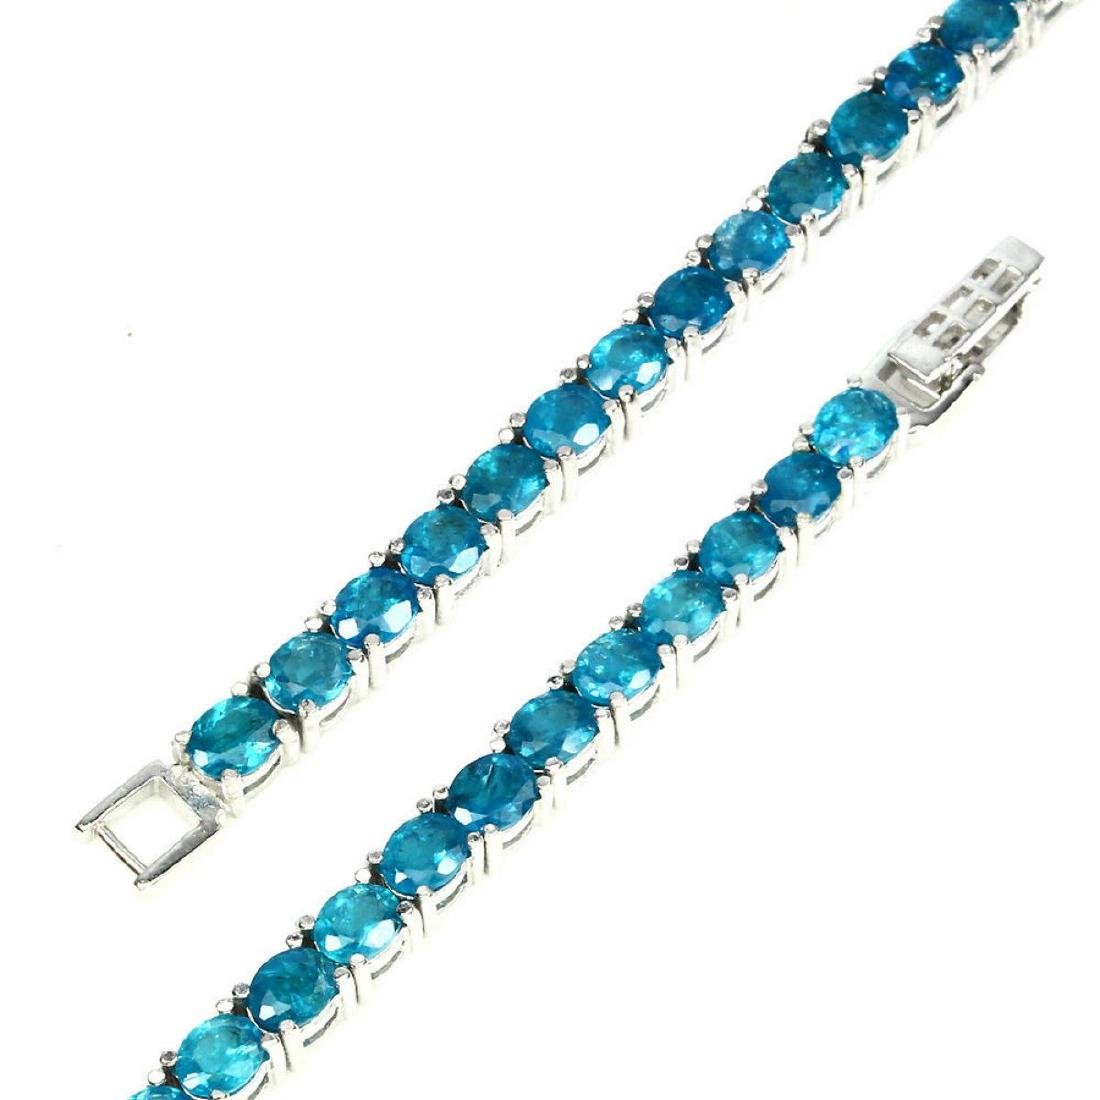 Natural Oval 5x4mm Aaa Neon Blue Apatite Bracelet - 3